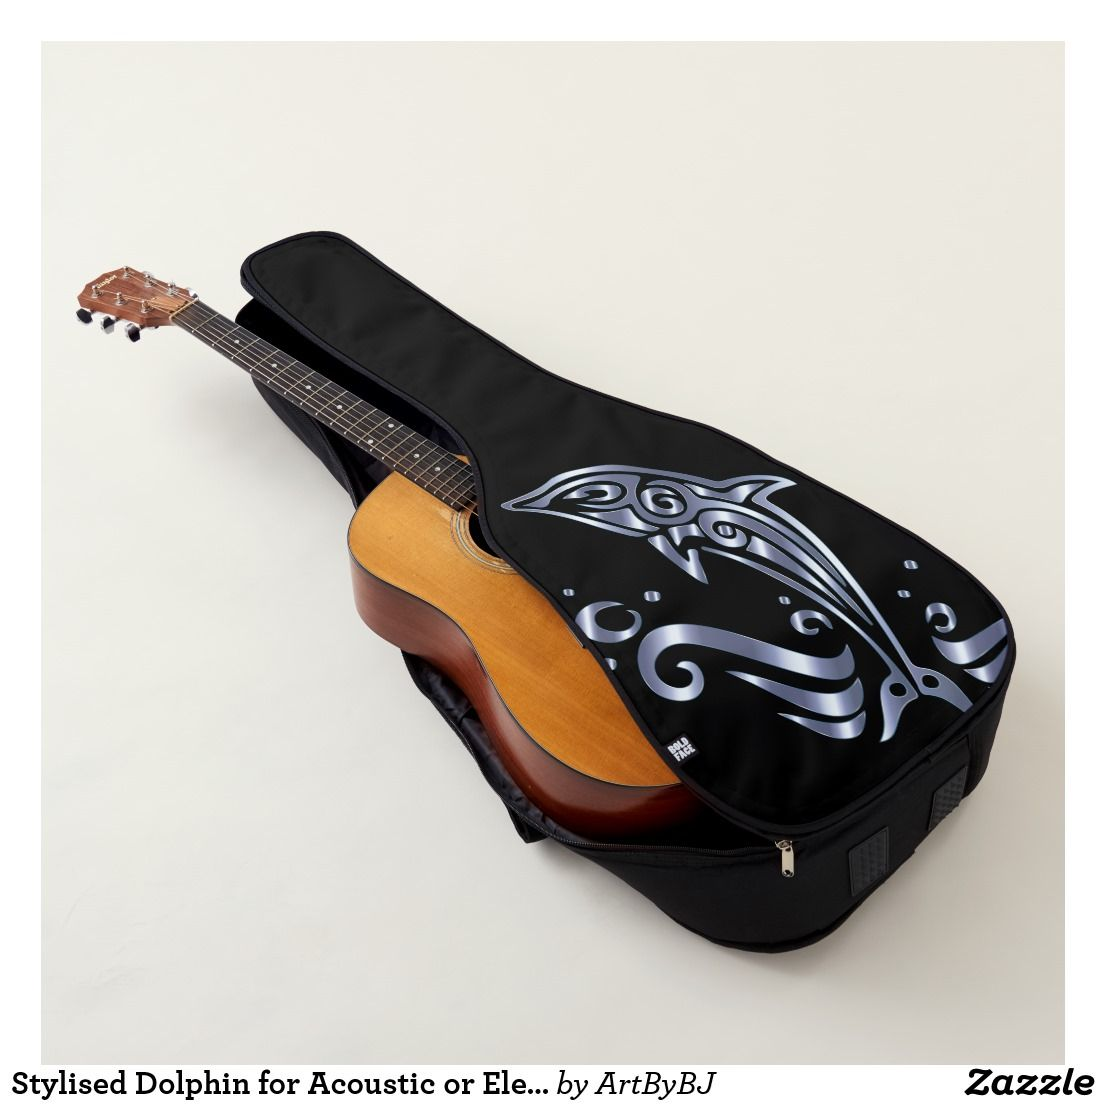 Stylised Dolphin For Acoustic Or Electric Guitar Case Zazzle Com Guitar Case Electric Guitar Case Guitar